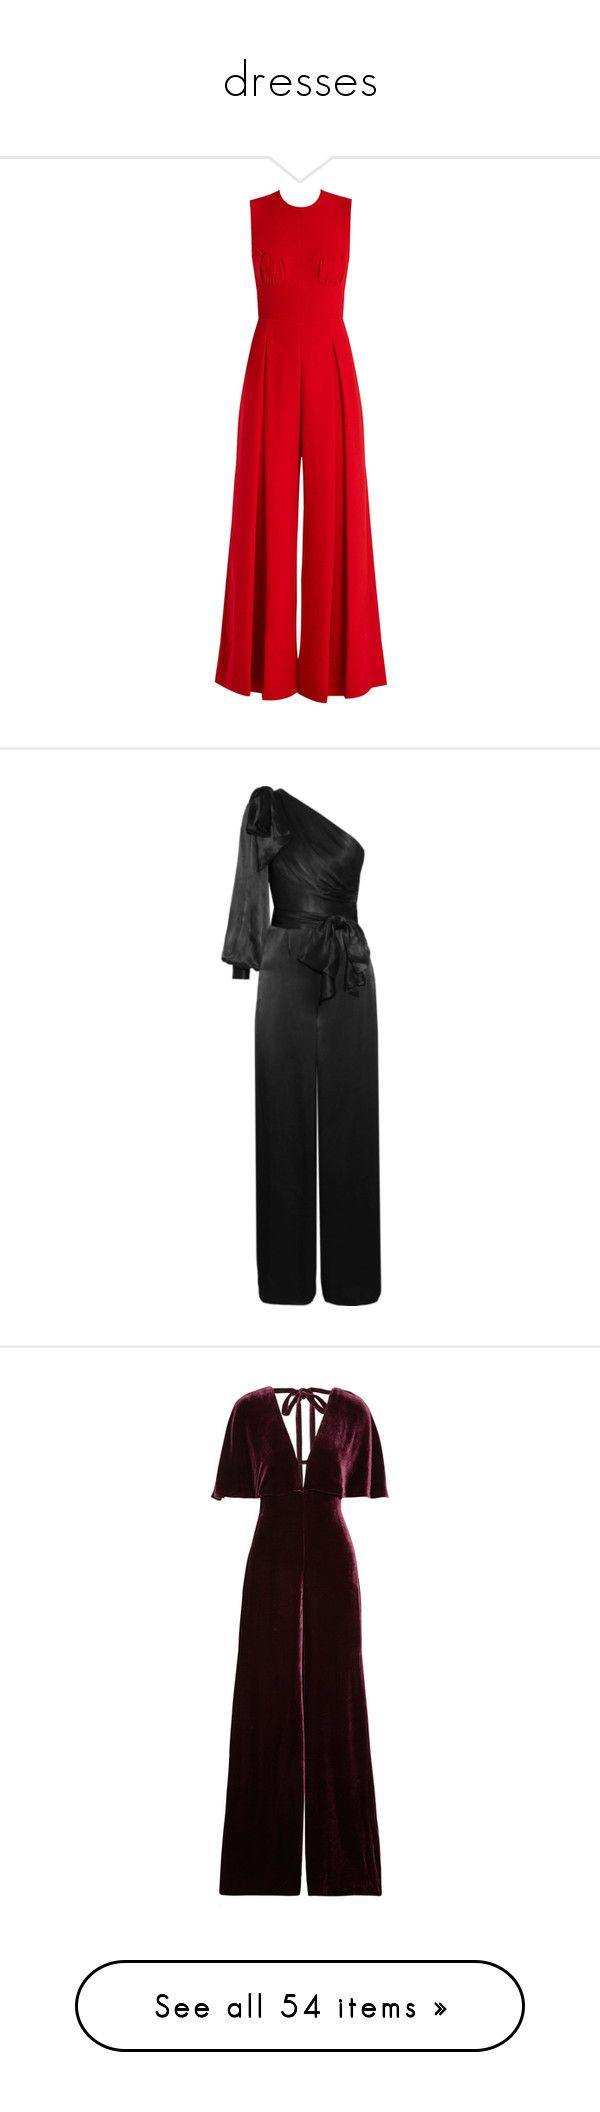 """""""dresses"""" by vie8rose ❤ liked on Polyvore featuring jumpsuits, emilia wickstead, jumpsuit, red, wide leg jumpsuit, open back jumpsuit, red jumpsuit, tailored jumpsuit, crepe jumpsuit and zimmermann"""